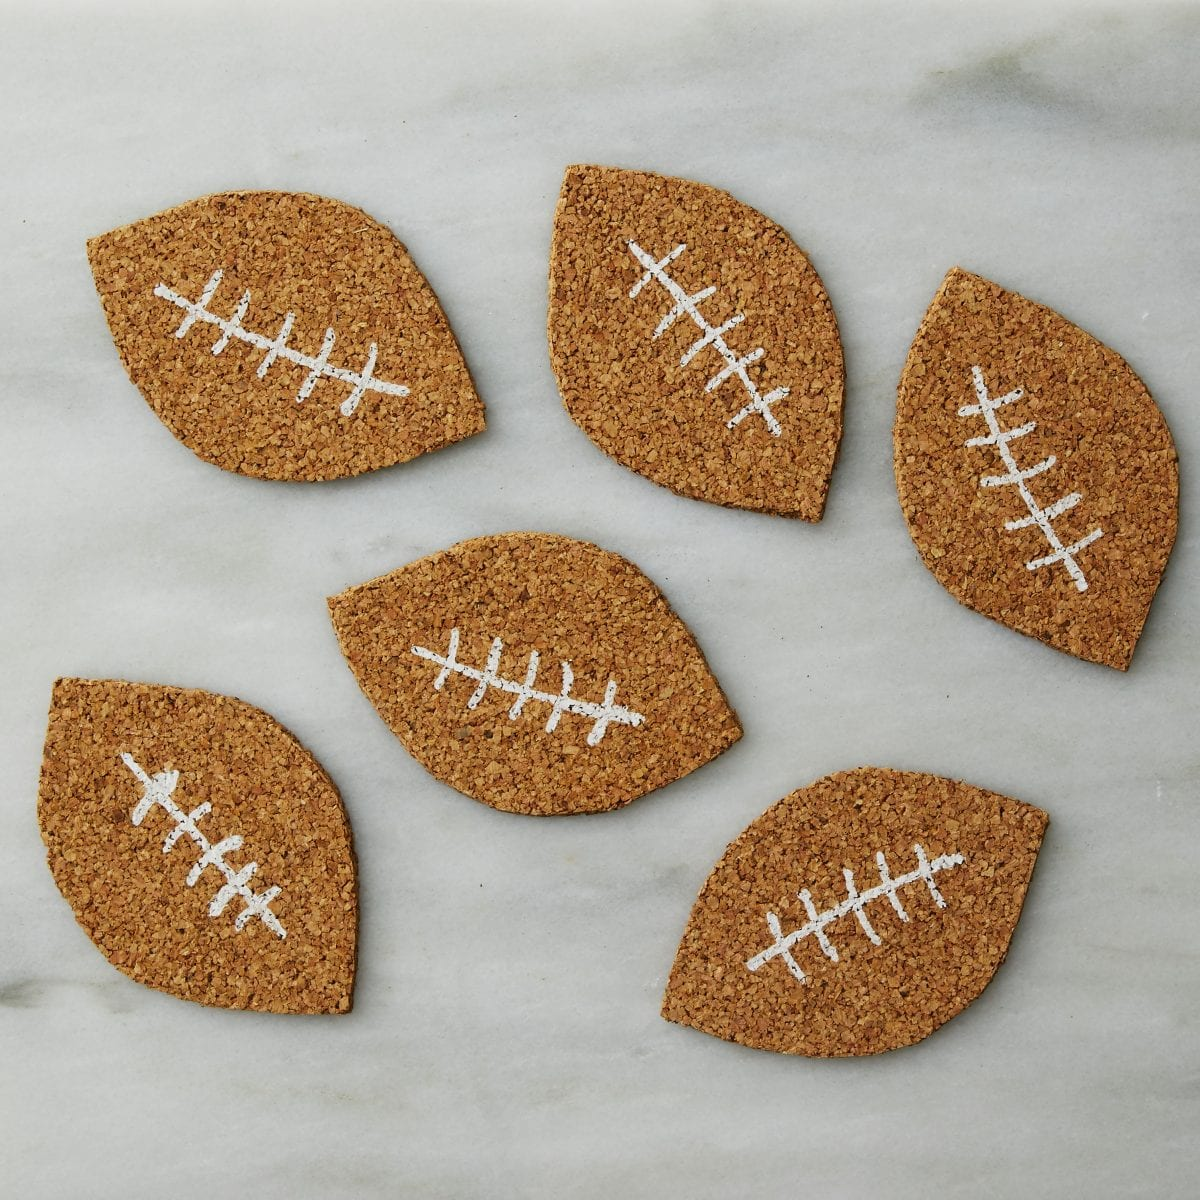 Darcy Miller Designs, Football Coasters, Super Bowl, cork, coaster, football, easy, game day, party, host, hostess, beer, easy craft, Darcy Miller, DIY